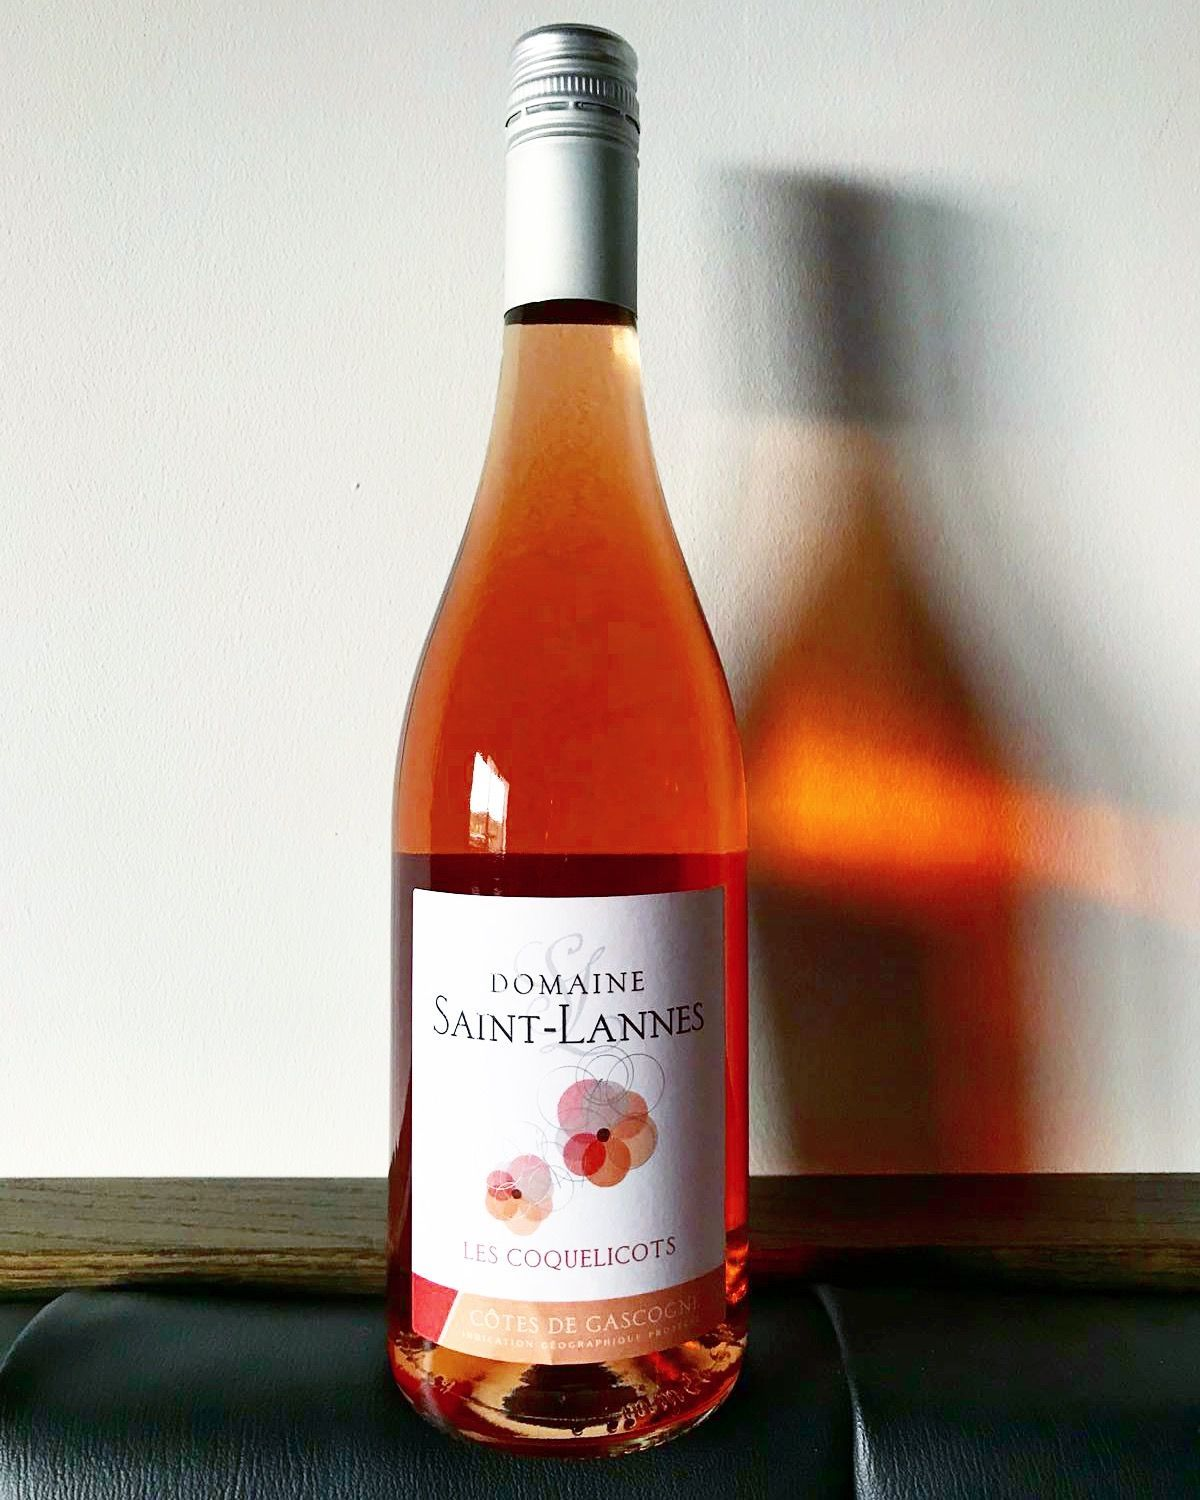 Wine Of The Week Domaine Saint Lannes Les Coquelicots Rose 2017 A Red Berry Fruity Salad In A Glass A Beautiful Salmon Pink Rose Fr Rose Rose Wine Fruity